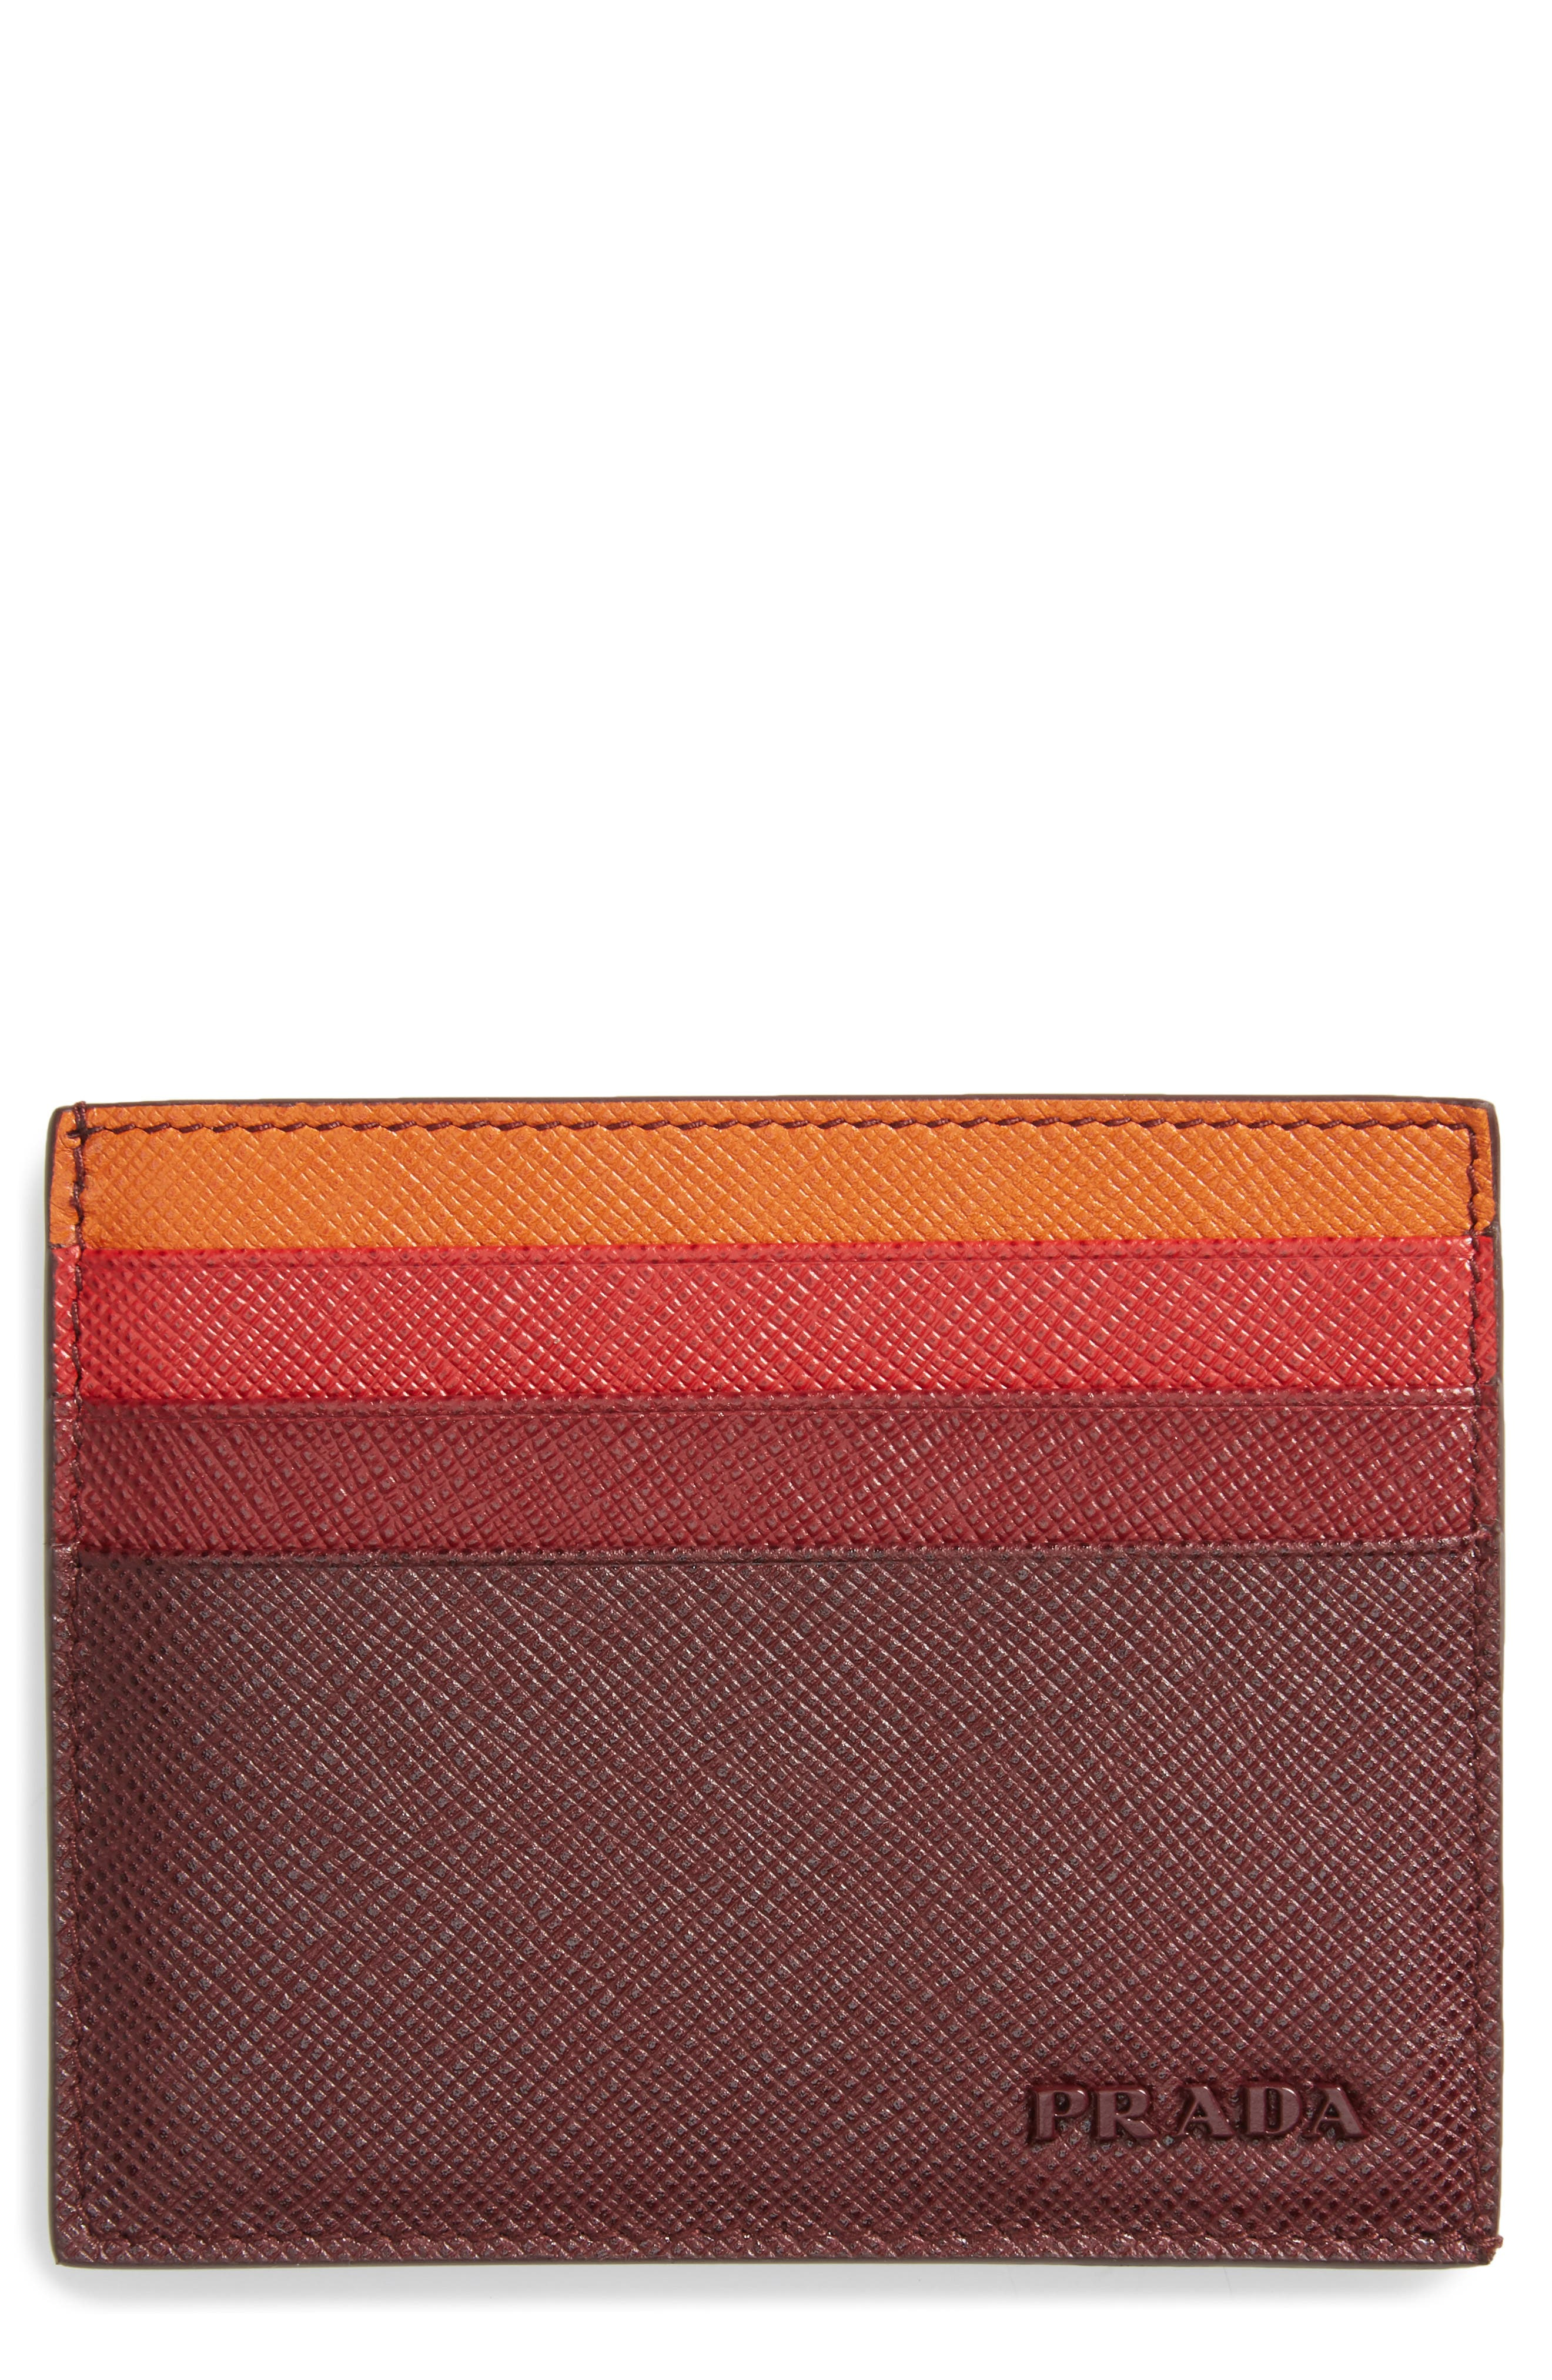 Prada Multicolor Saffiano Leather